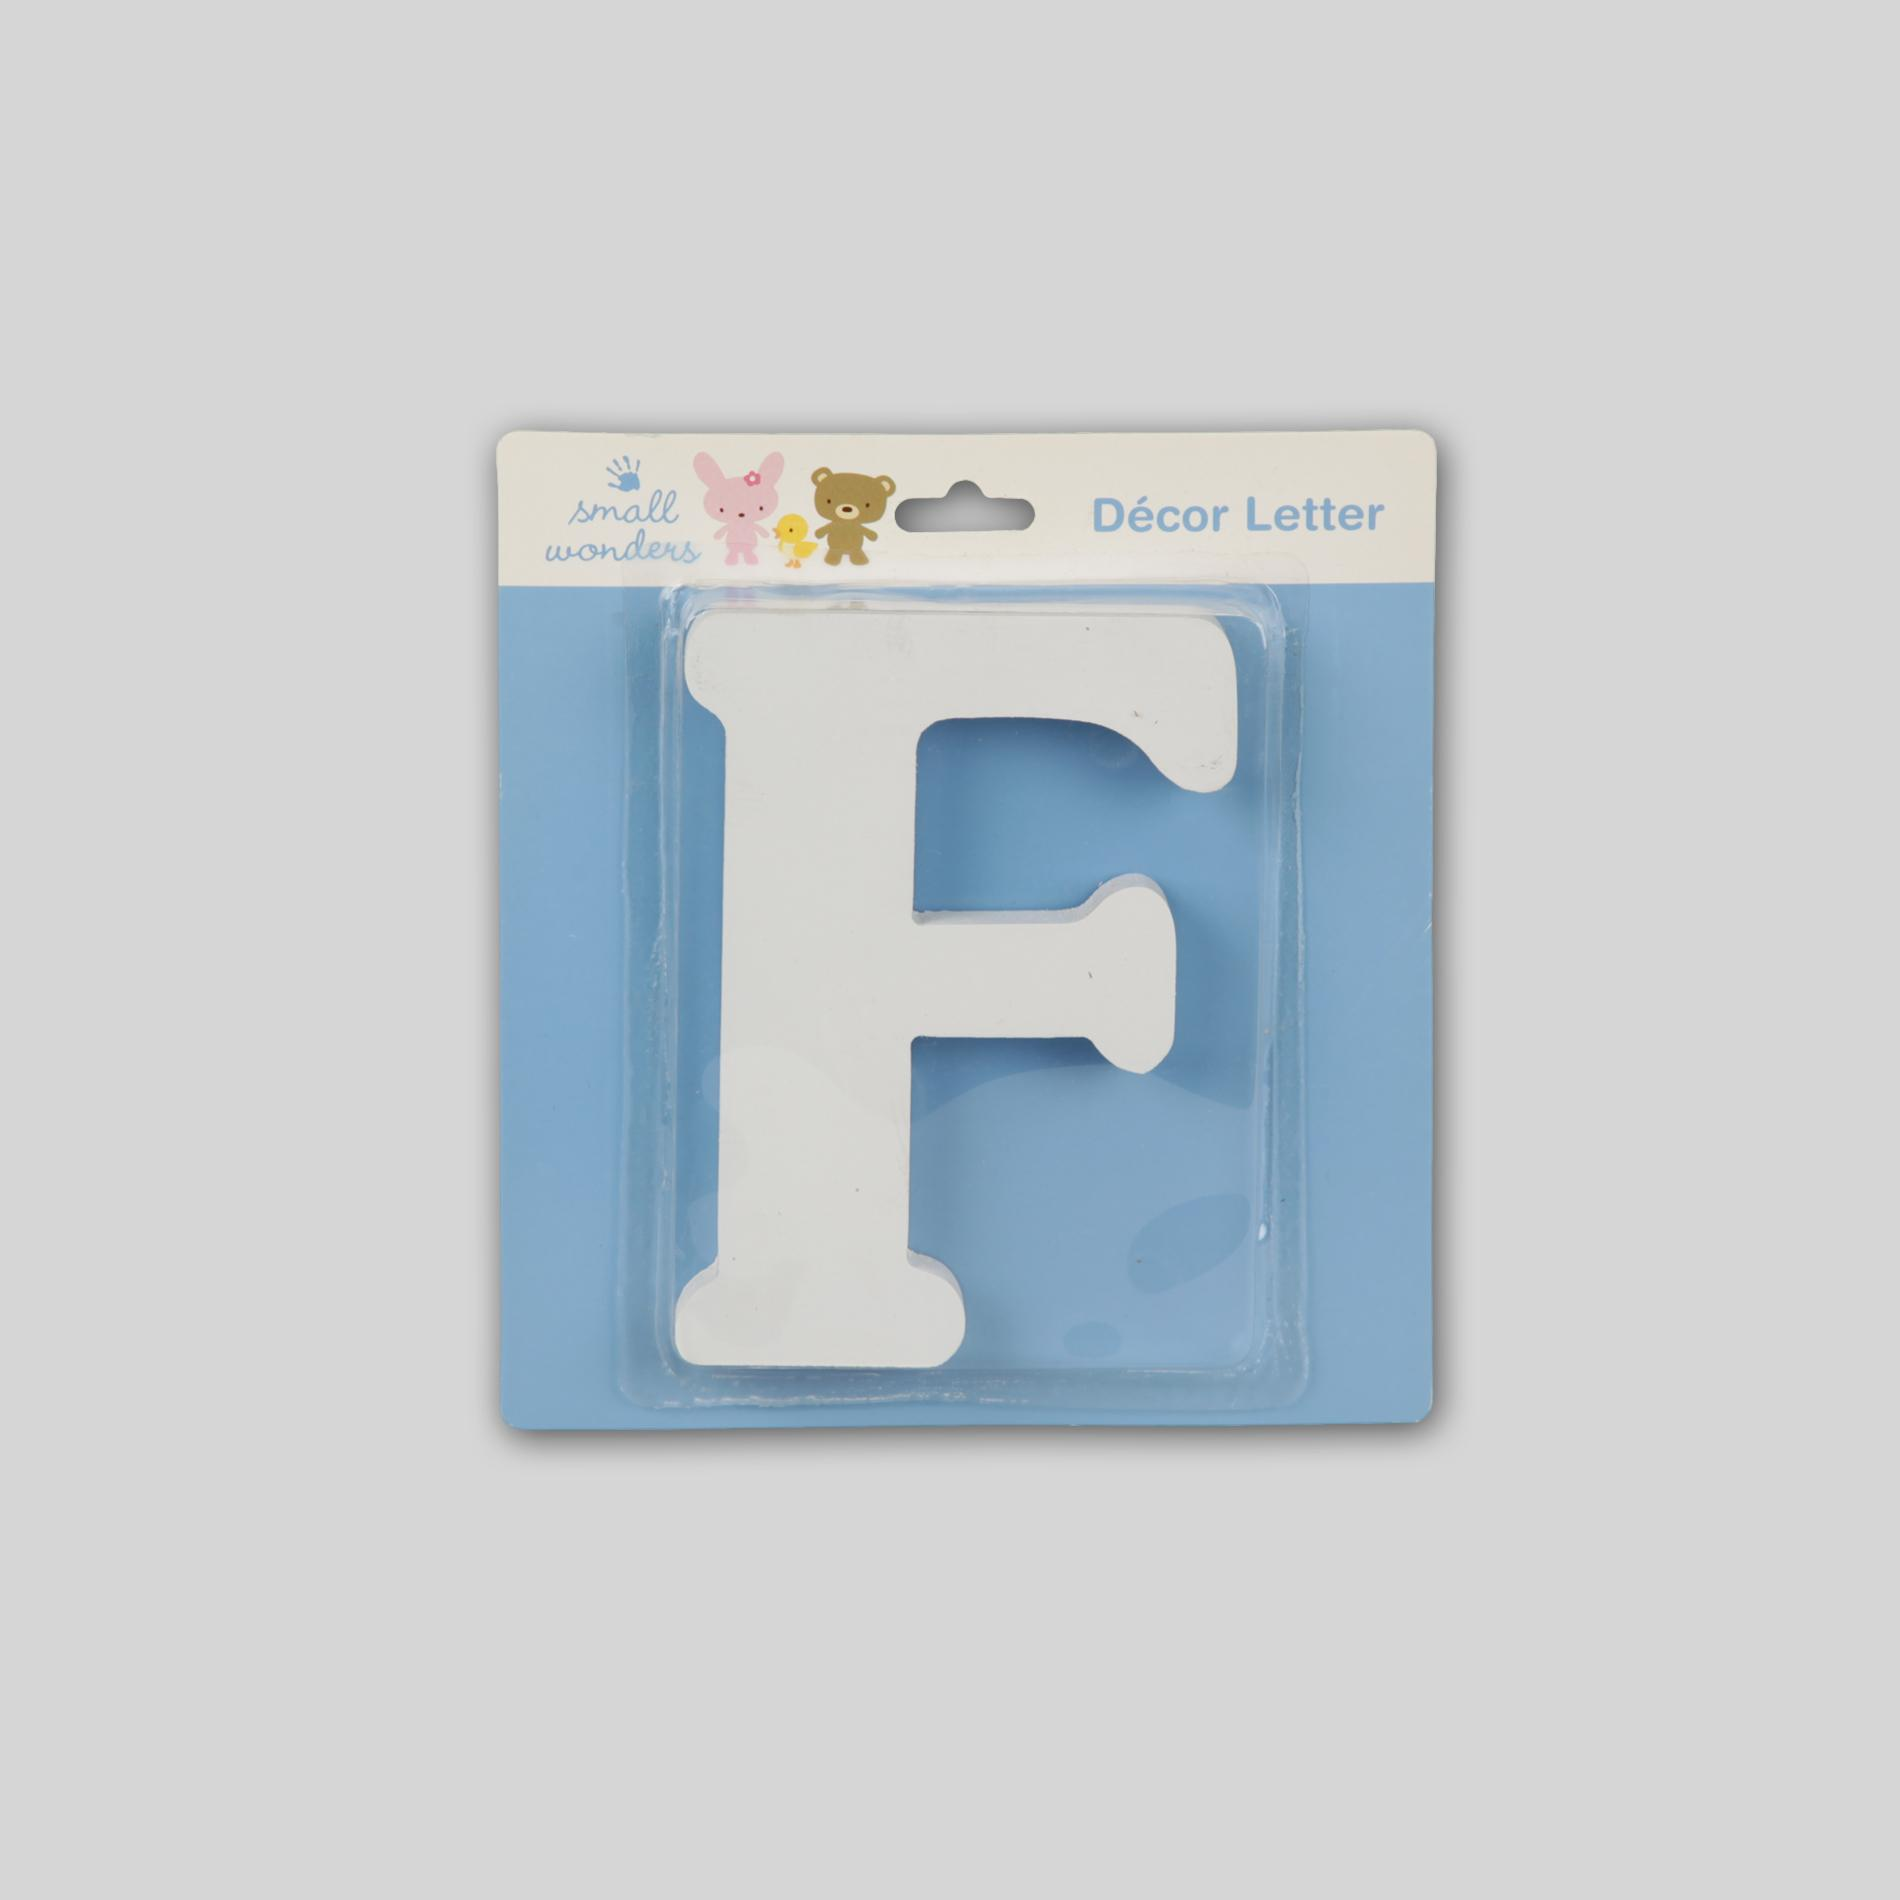 Small Wonders Wooden Letter Wall Decor - Letter F